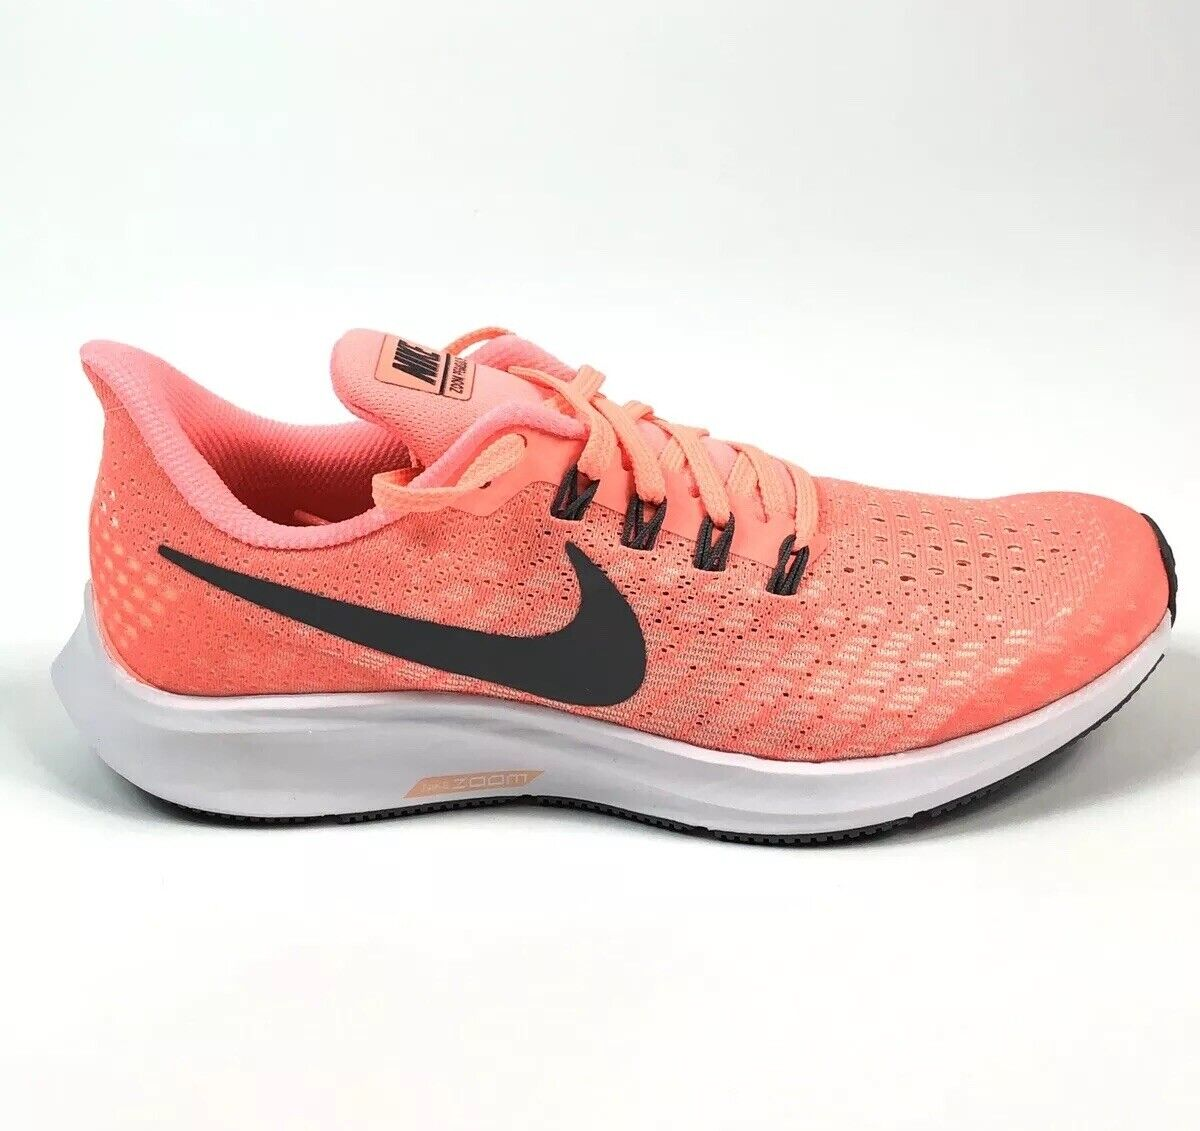 NIKE Air Zoom Pegasus 35 GS AH3481 800 CRIMSON PULSE SIze 6Y Kids Girls Women